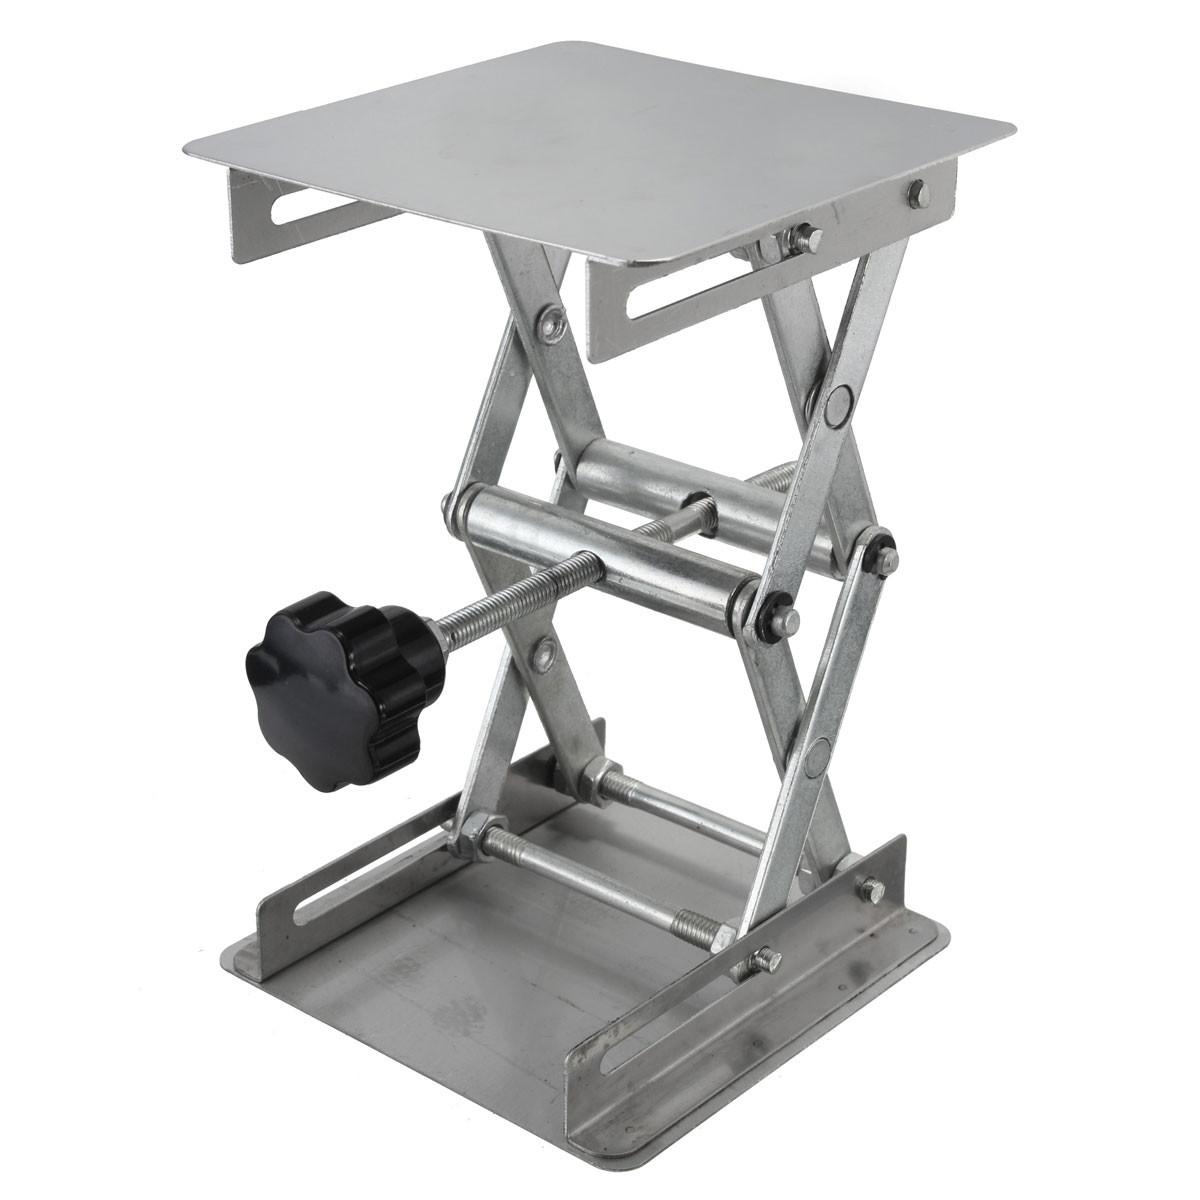 Adjustable Stainless Steel Laboratory Lab-Lift Lifting Platforms Jack Scissor Lift Platform / Foldable Lifting Table Pad